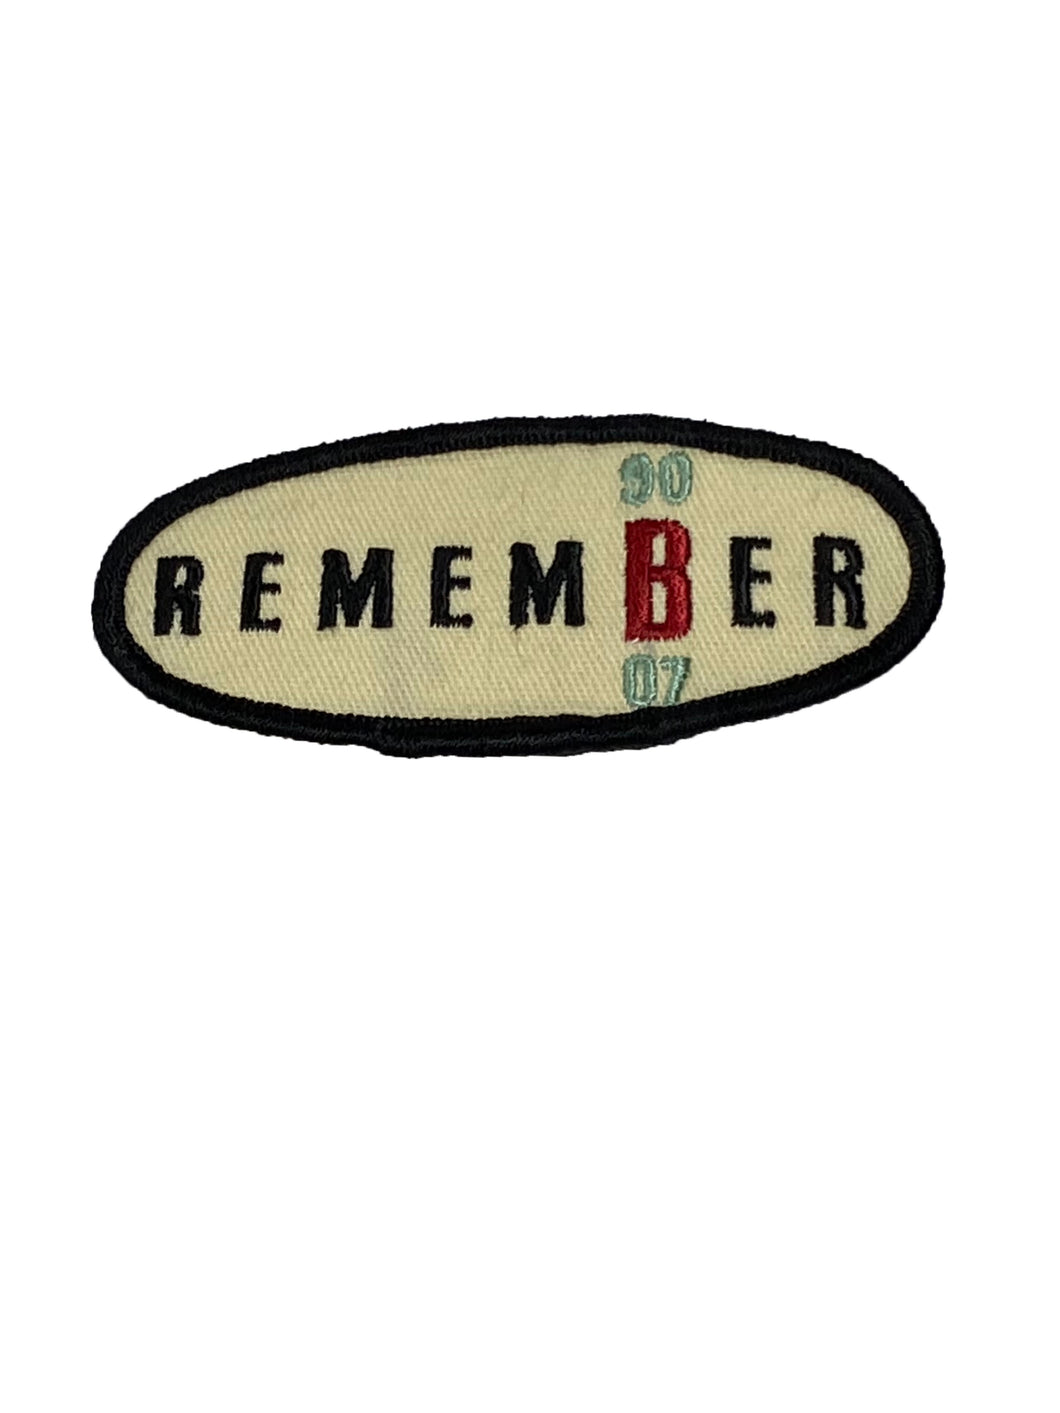 RememBer Patch